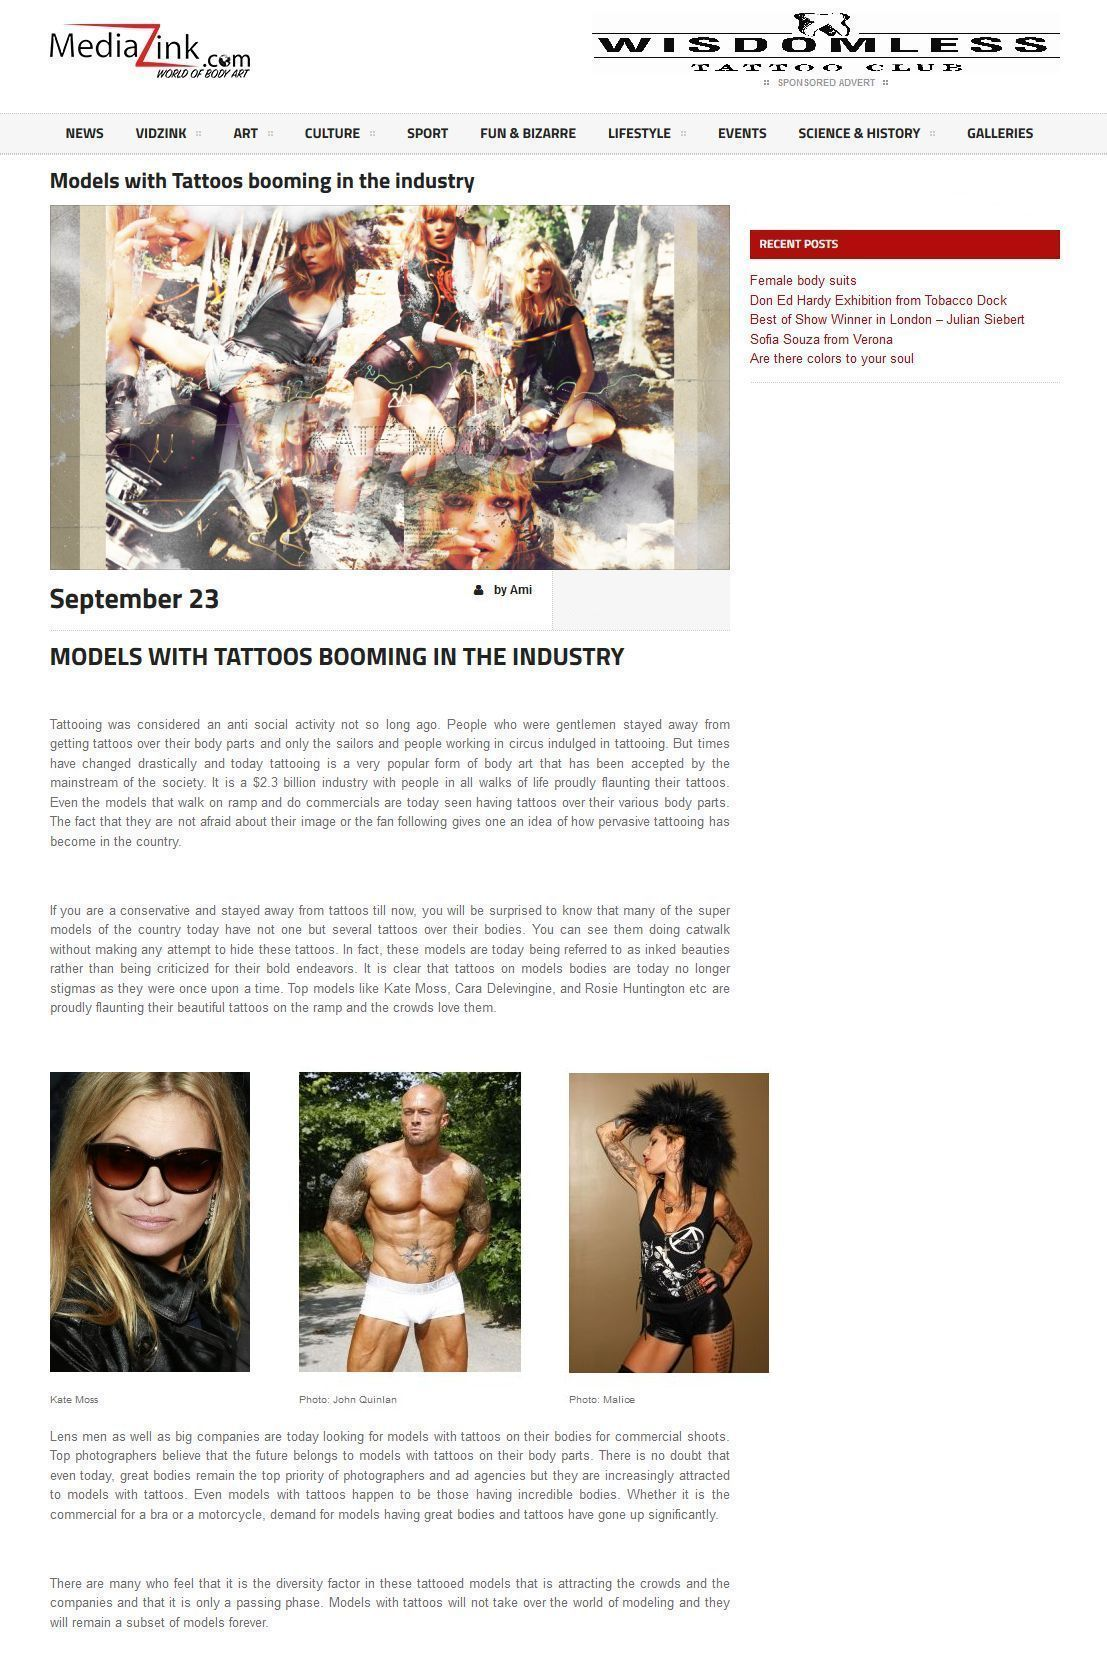 Tattoo Model Industry Feature @ Media Z Ink with Kate Moss John Joseph Quinlan & Malice McMunn Calvin Klein #JohnQuinlan #KateMoss #MaliceMcMunn